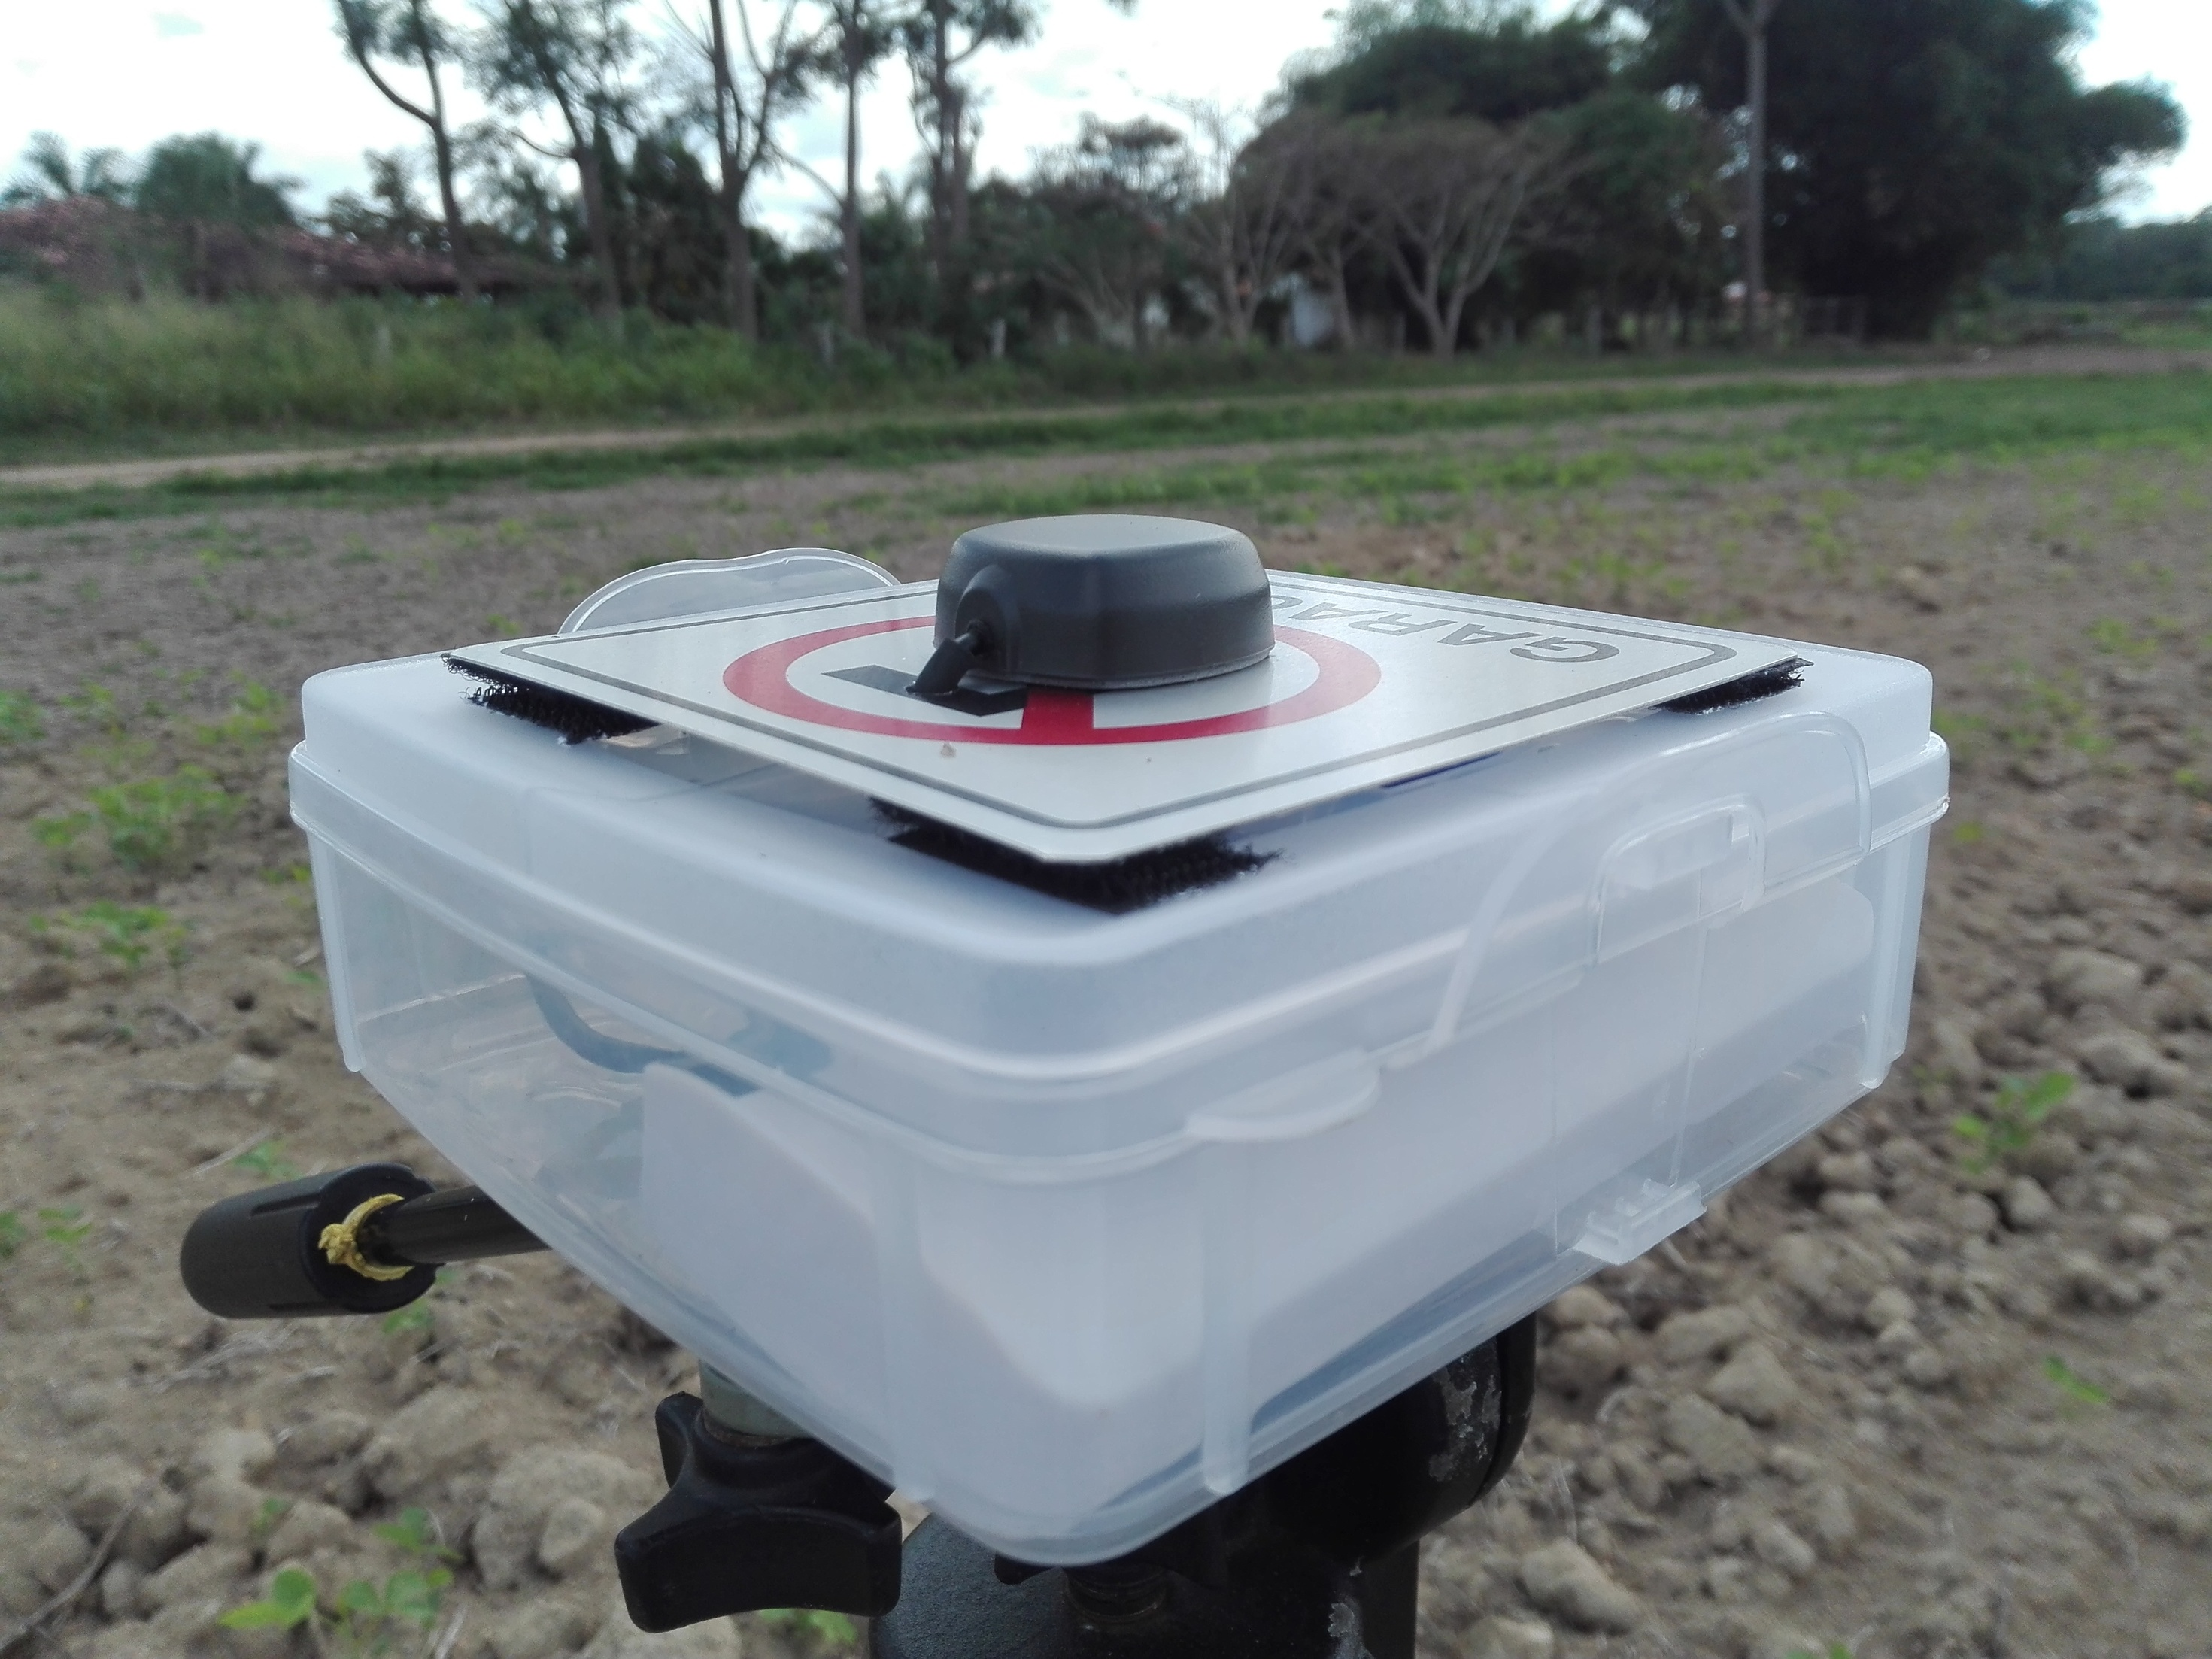 PPK Drone and Base: Only Q2 fix - RTK / Post-processing